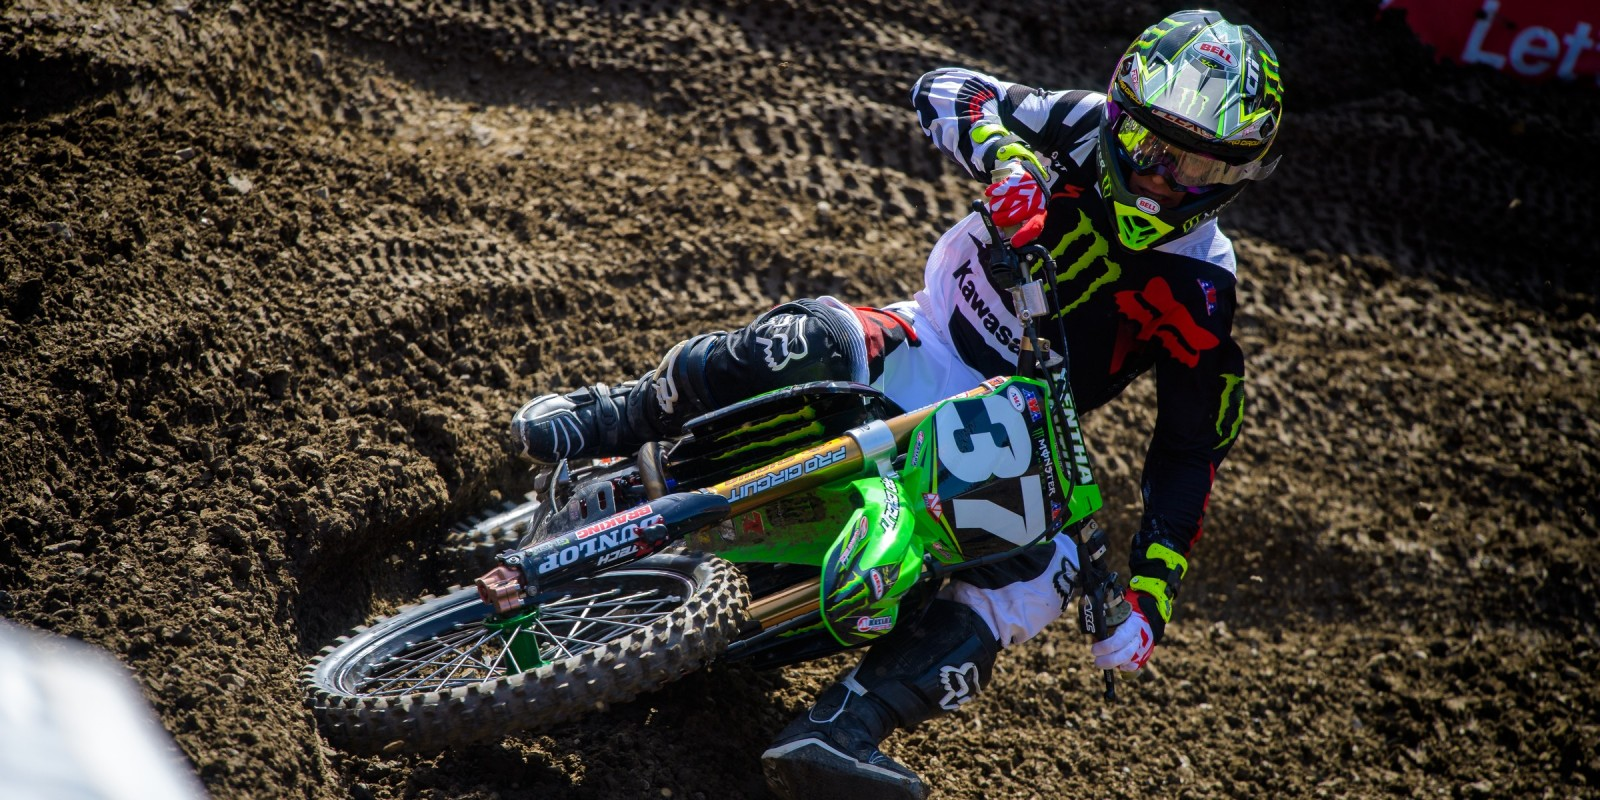 Monster athletes compete in the Supercross season in Santa Clara